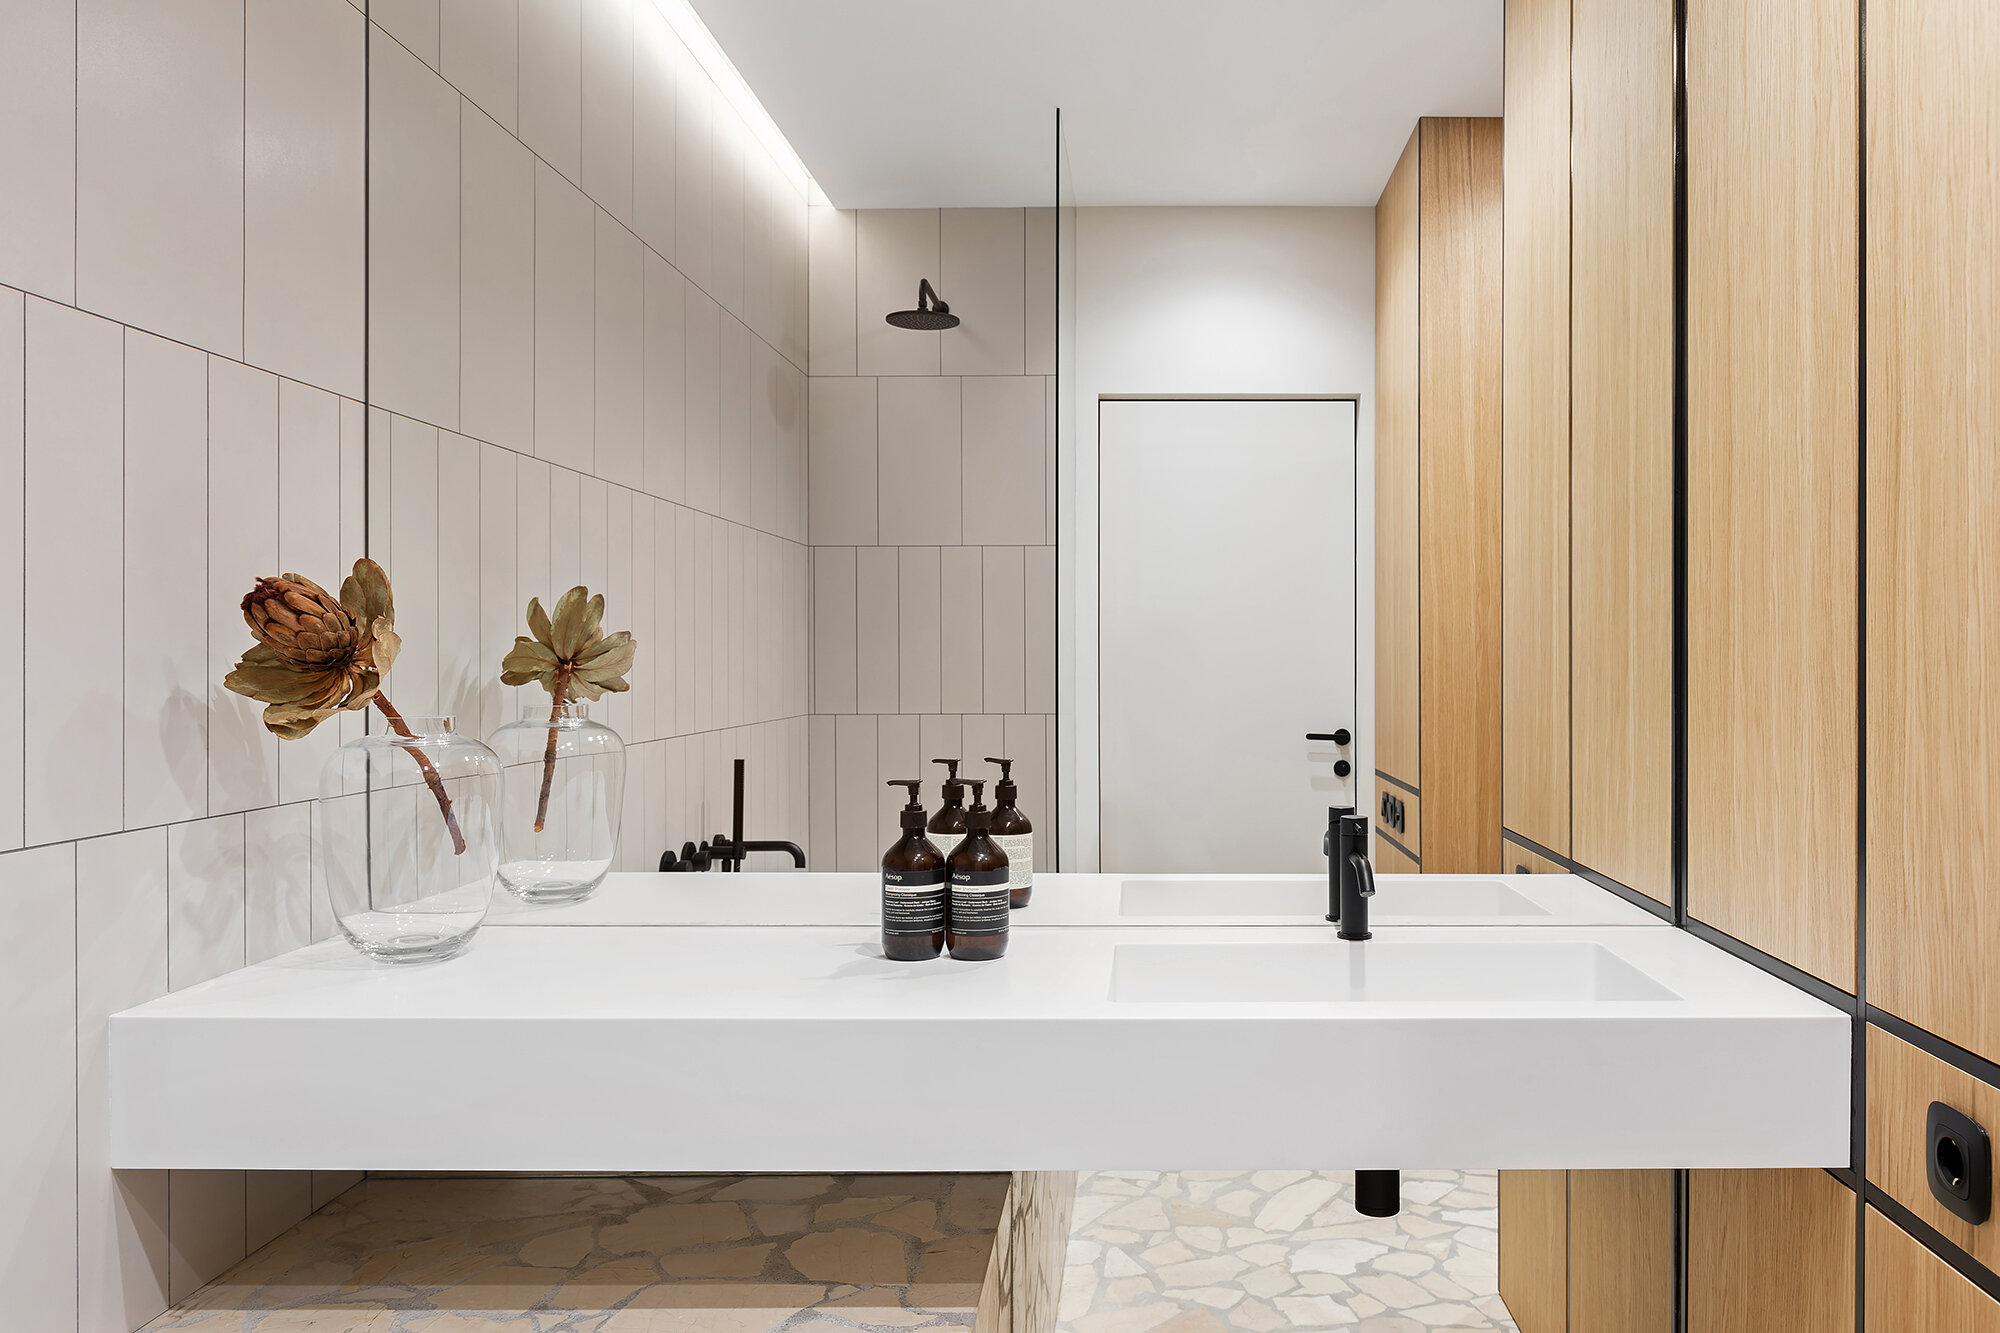 10_ater.architects_EGR Apartment_Inspirationist